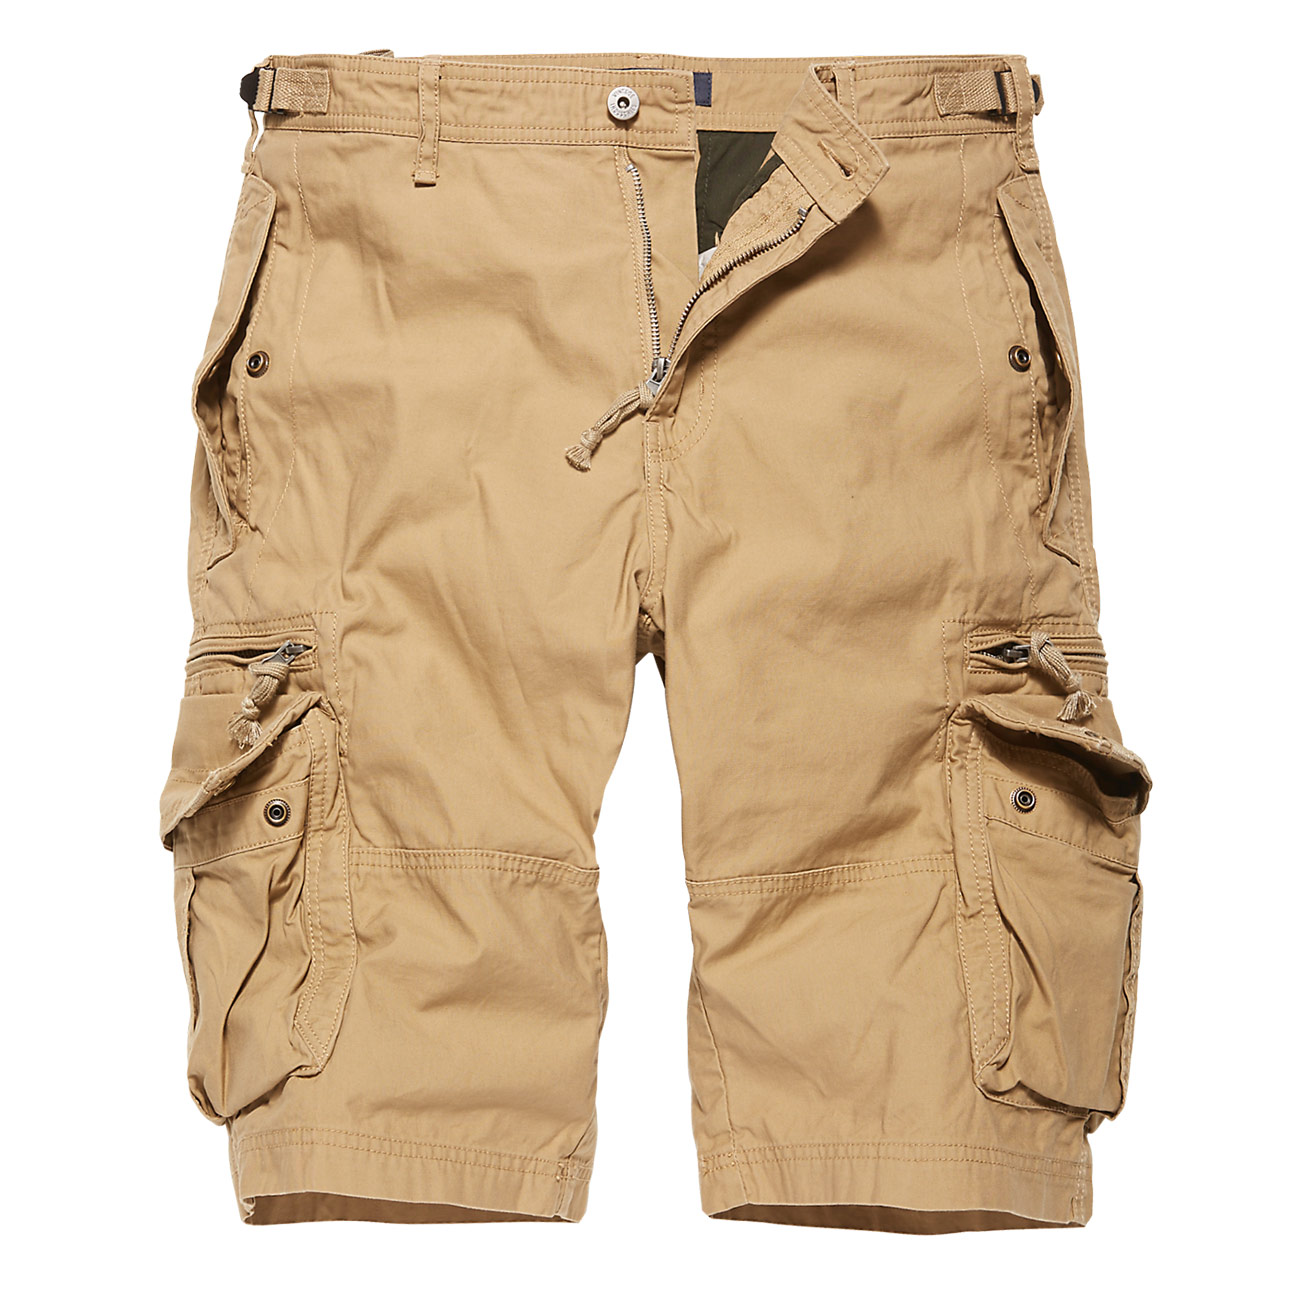 Vintage Industries Shorts Gandor safari 0